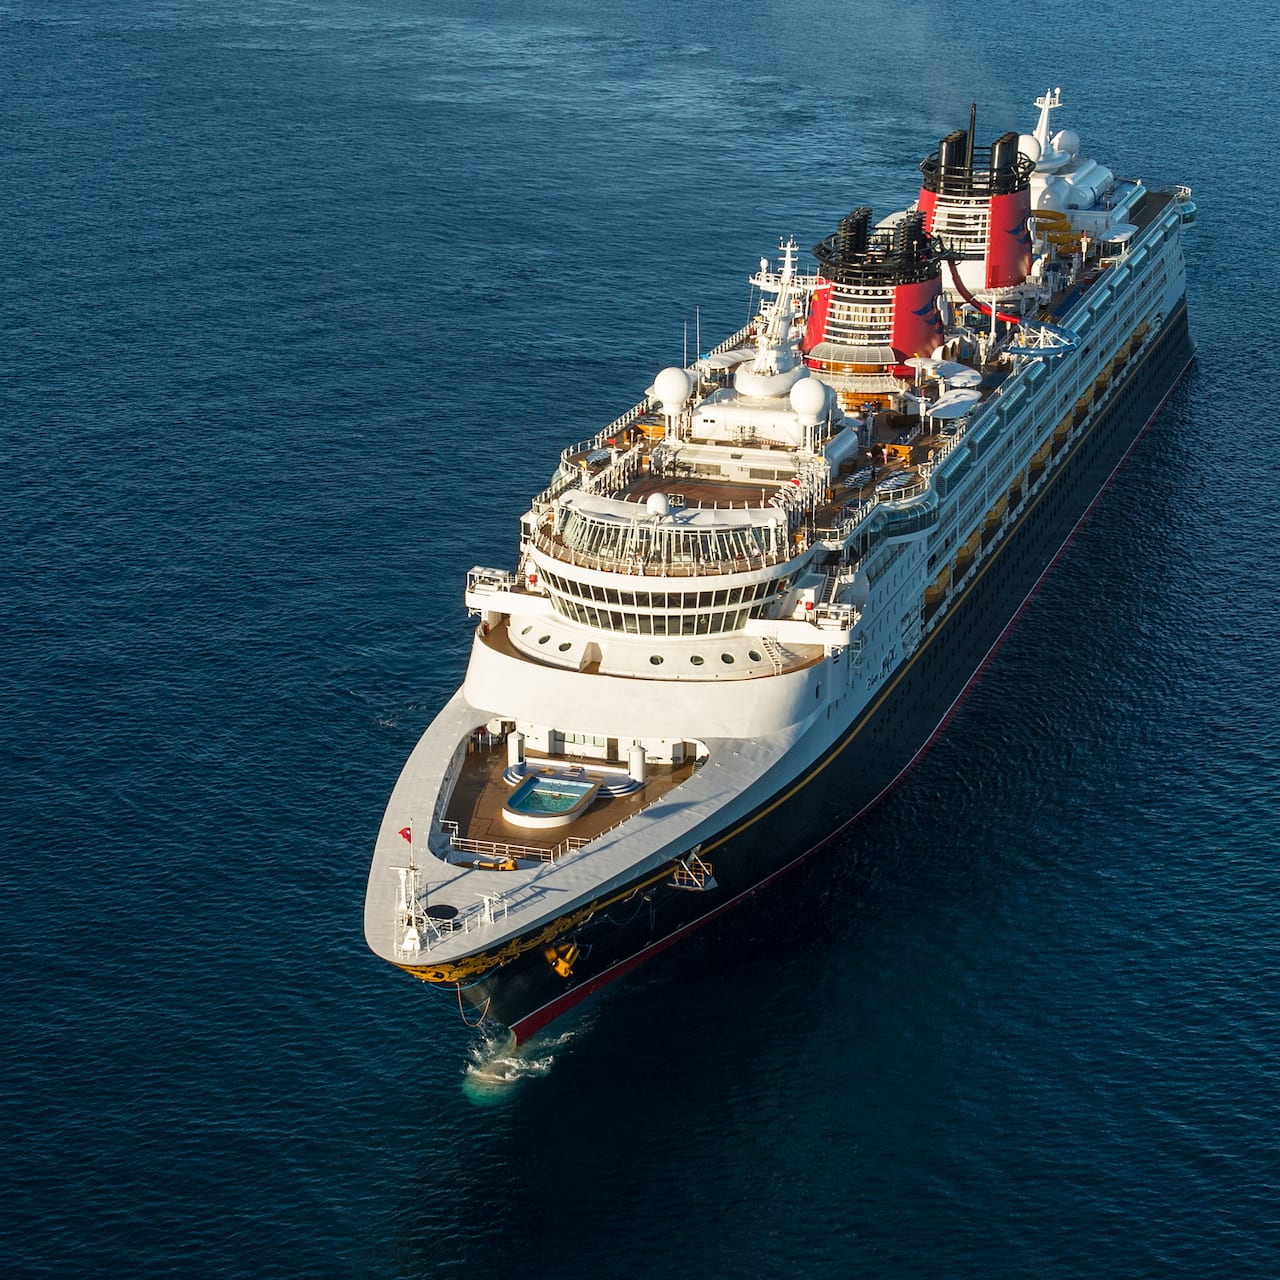 An aerial view of the Disney Magic cruise ship at sea